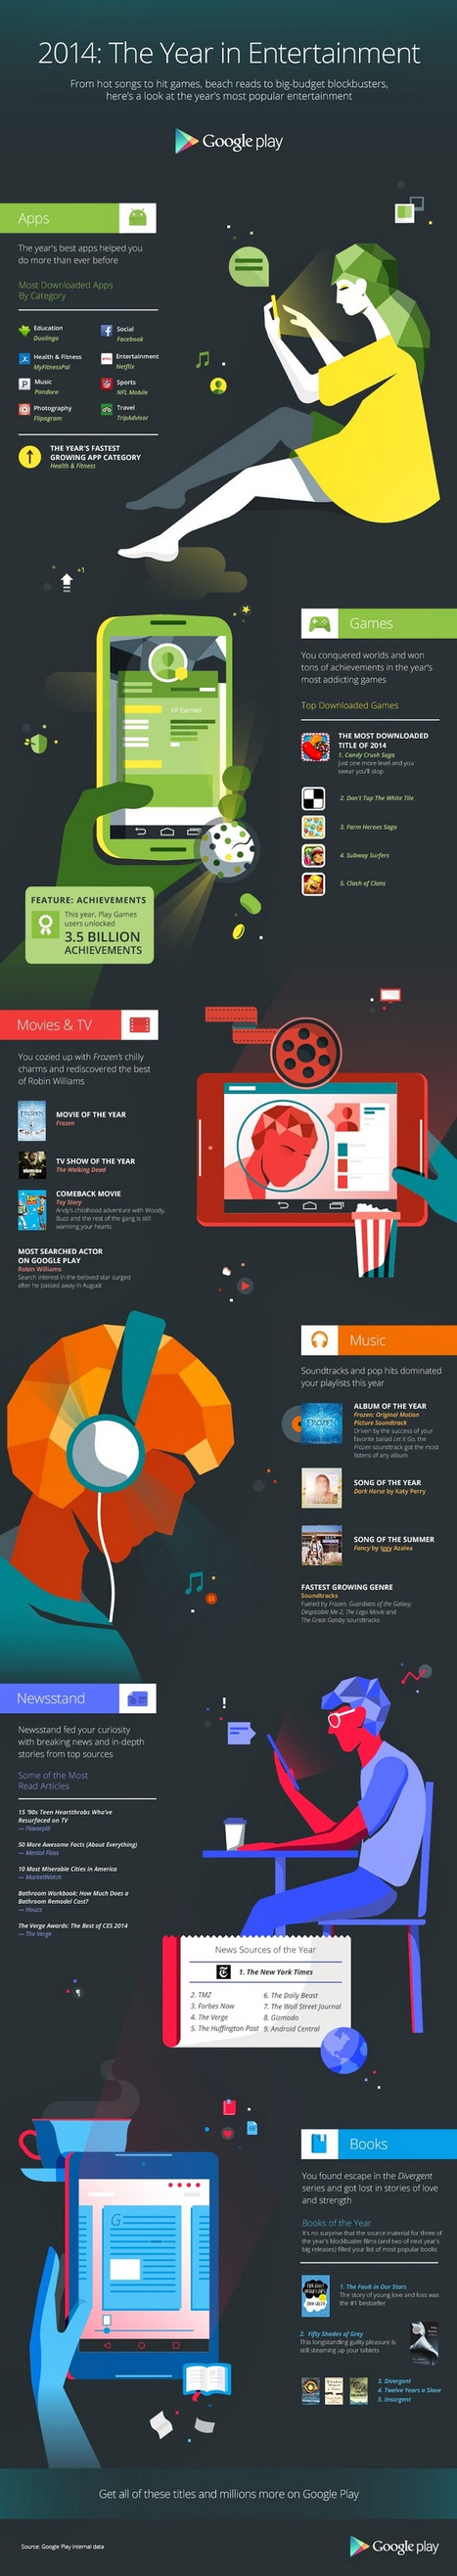 Your Favorite Apps, Games, Movies and more in 2014 | The Programmer's World | Android - Apple World | Scoop.it